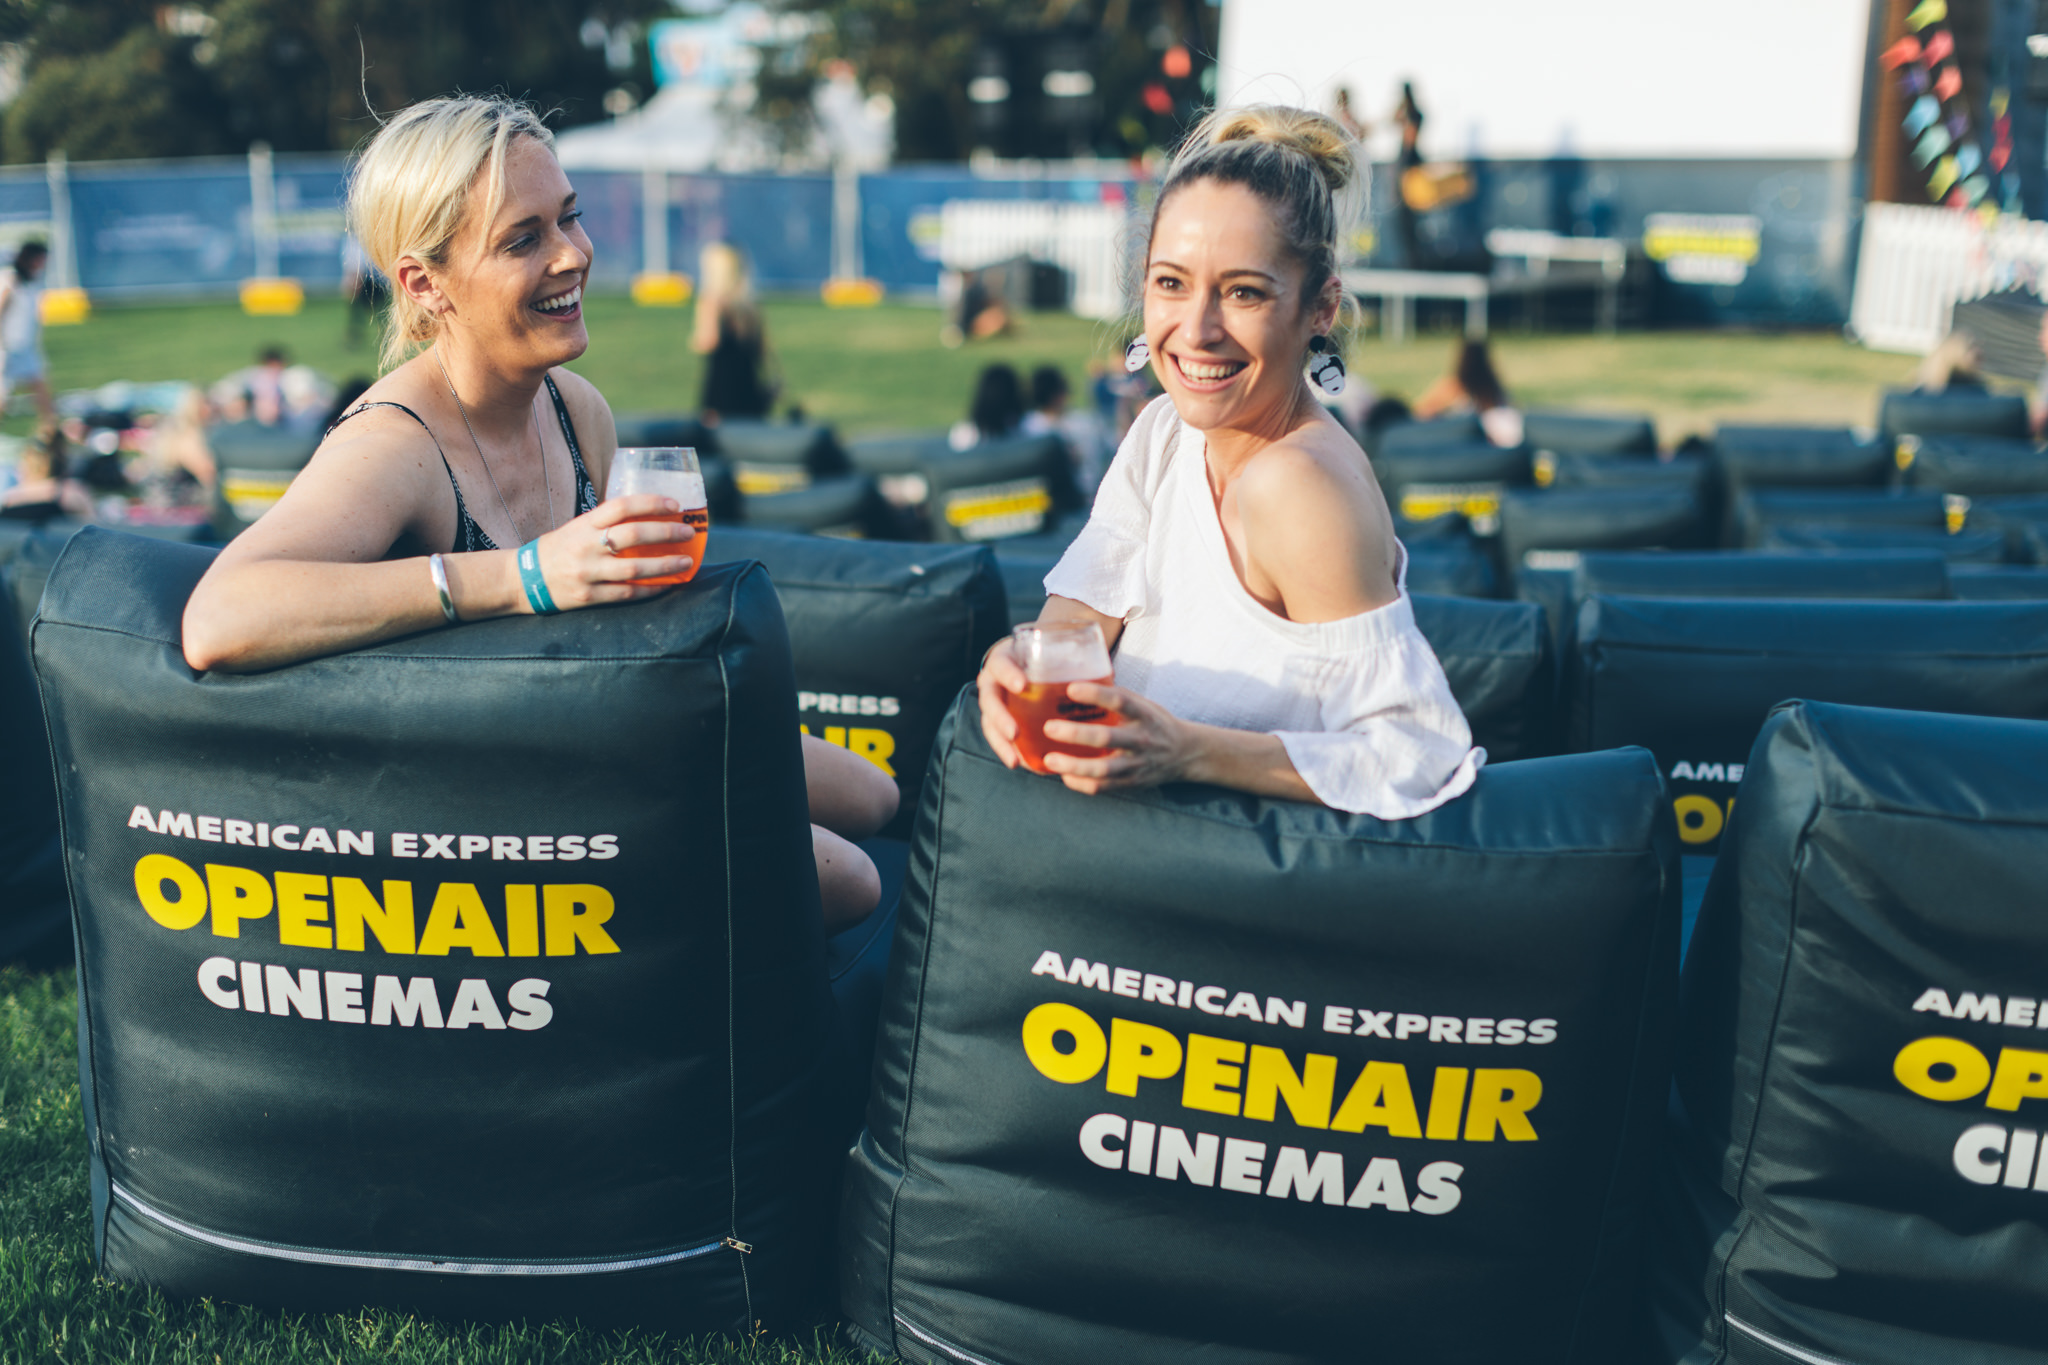 amex invites - openair cinema